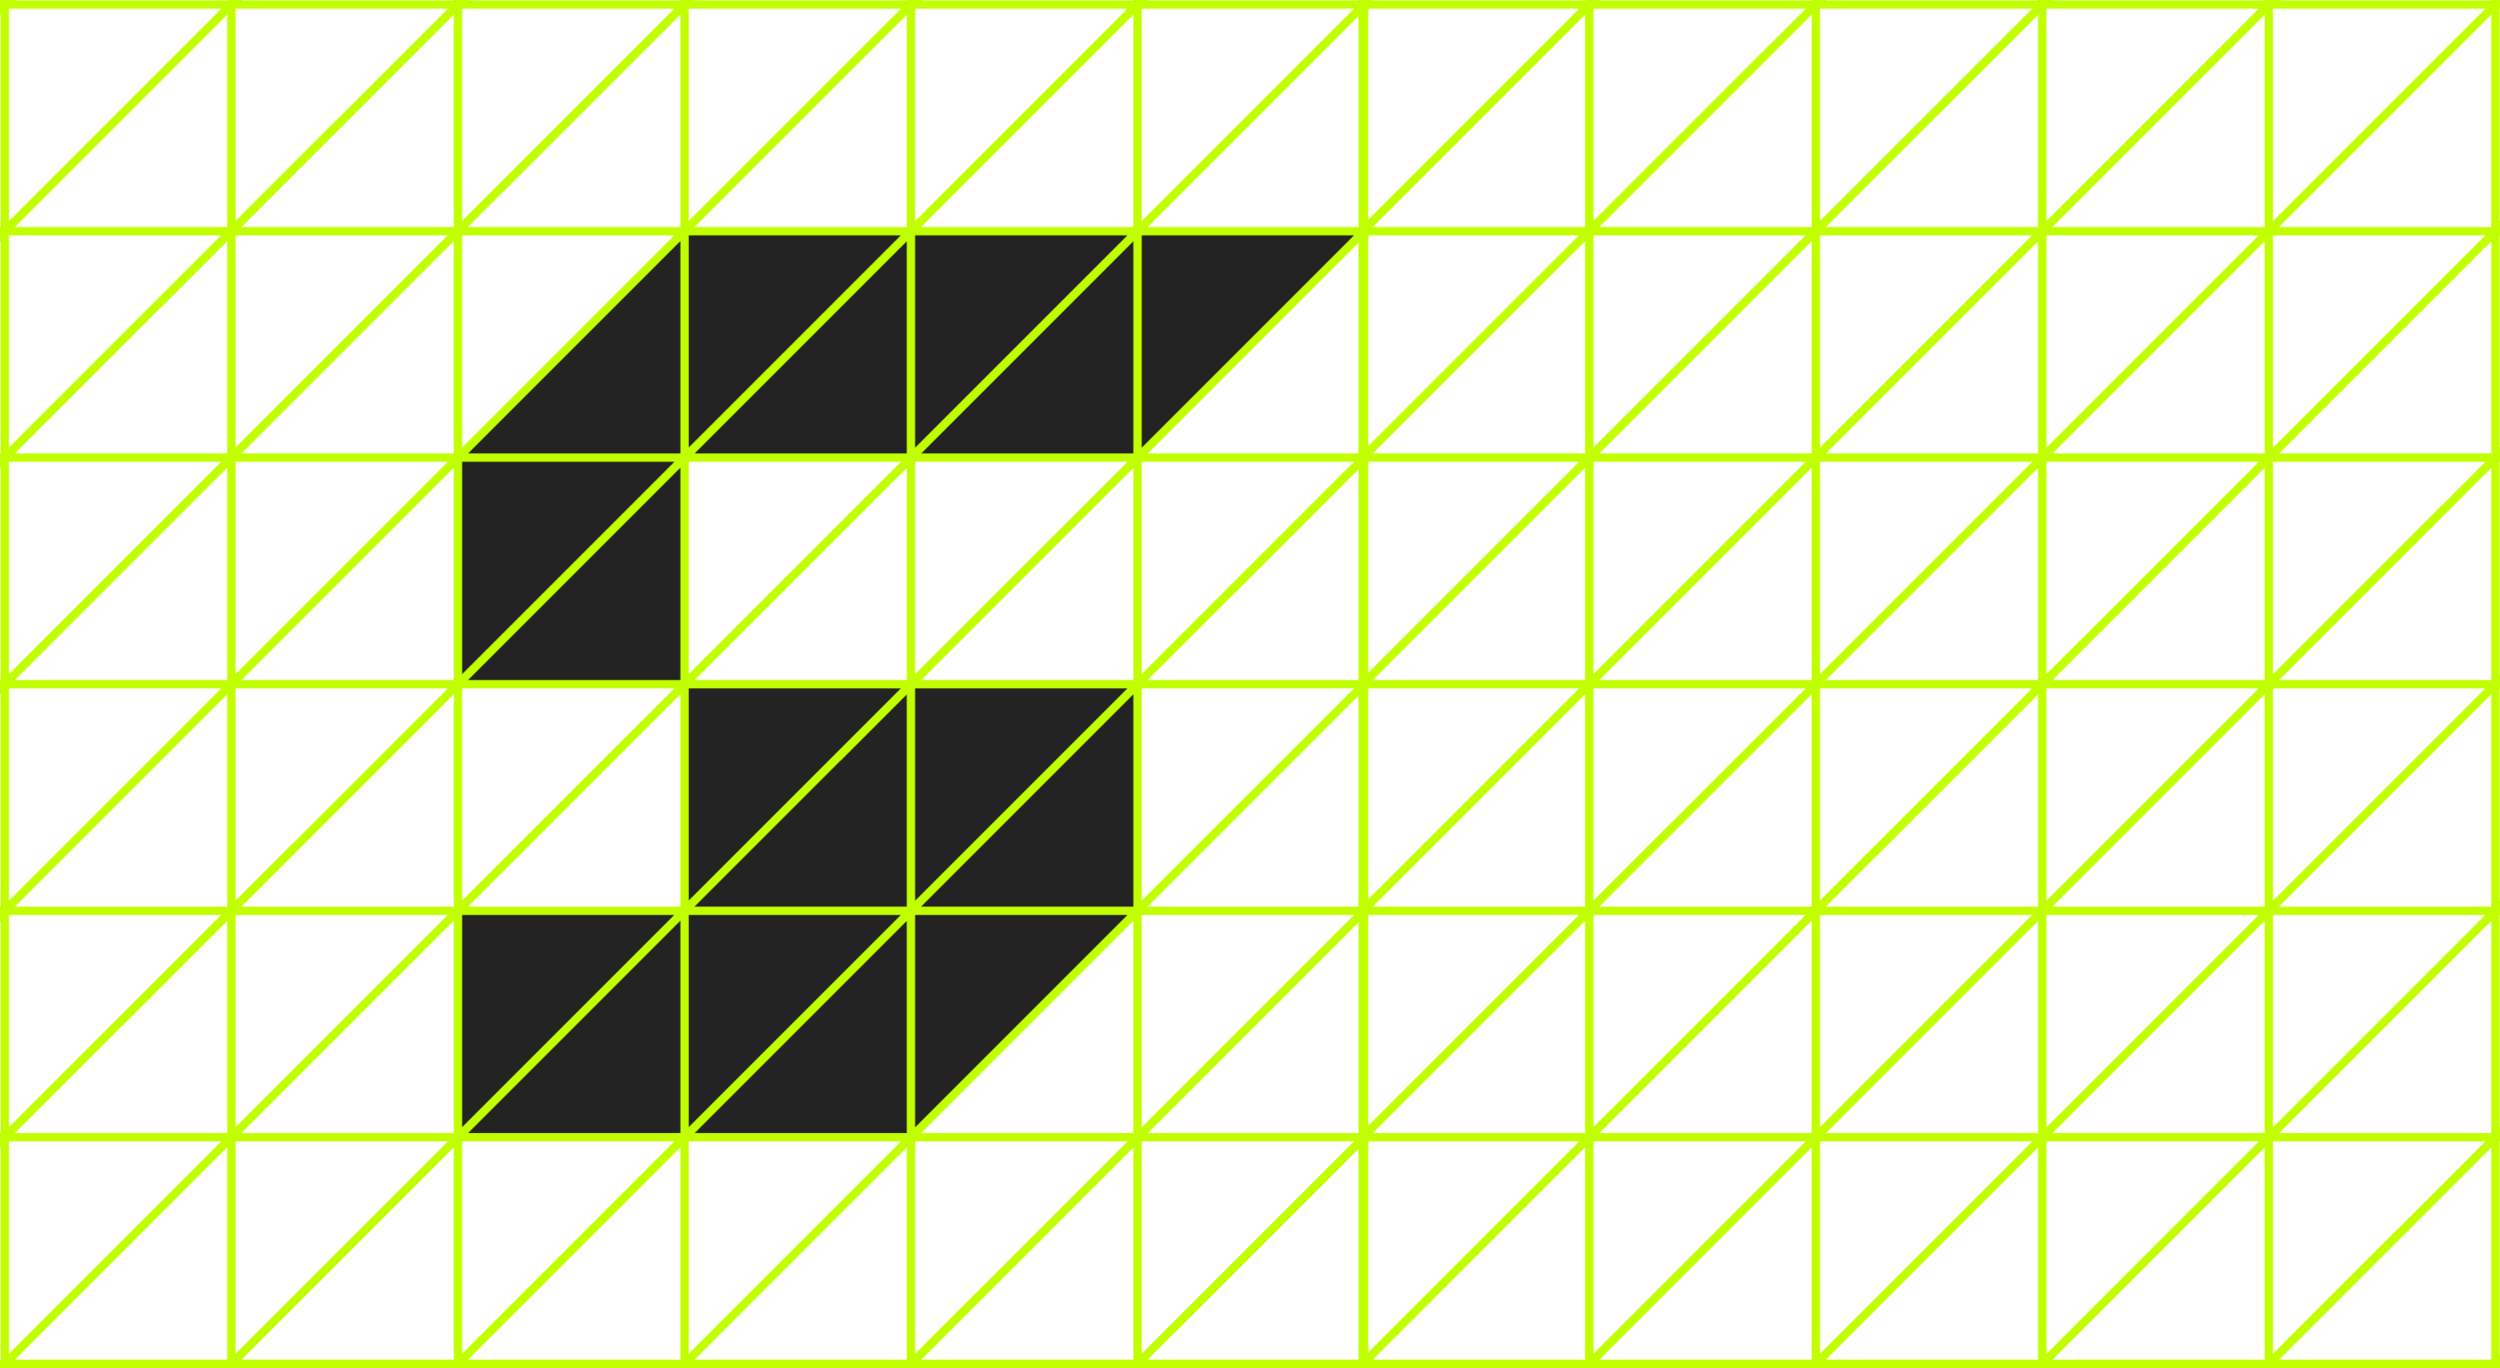 S_Grid.png